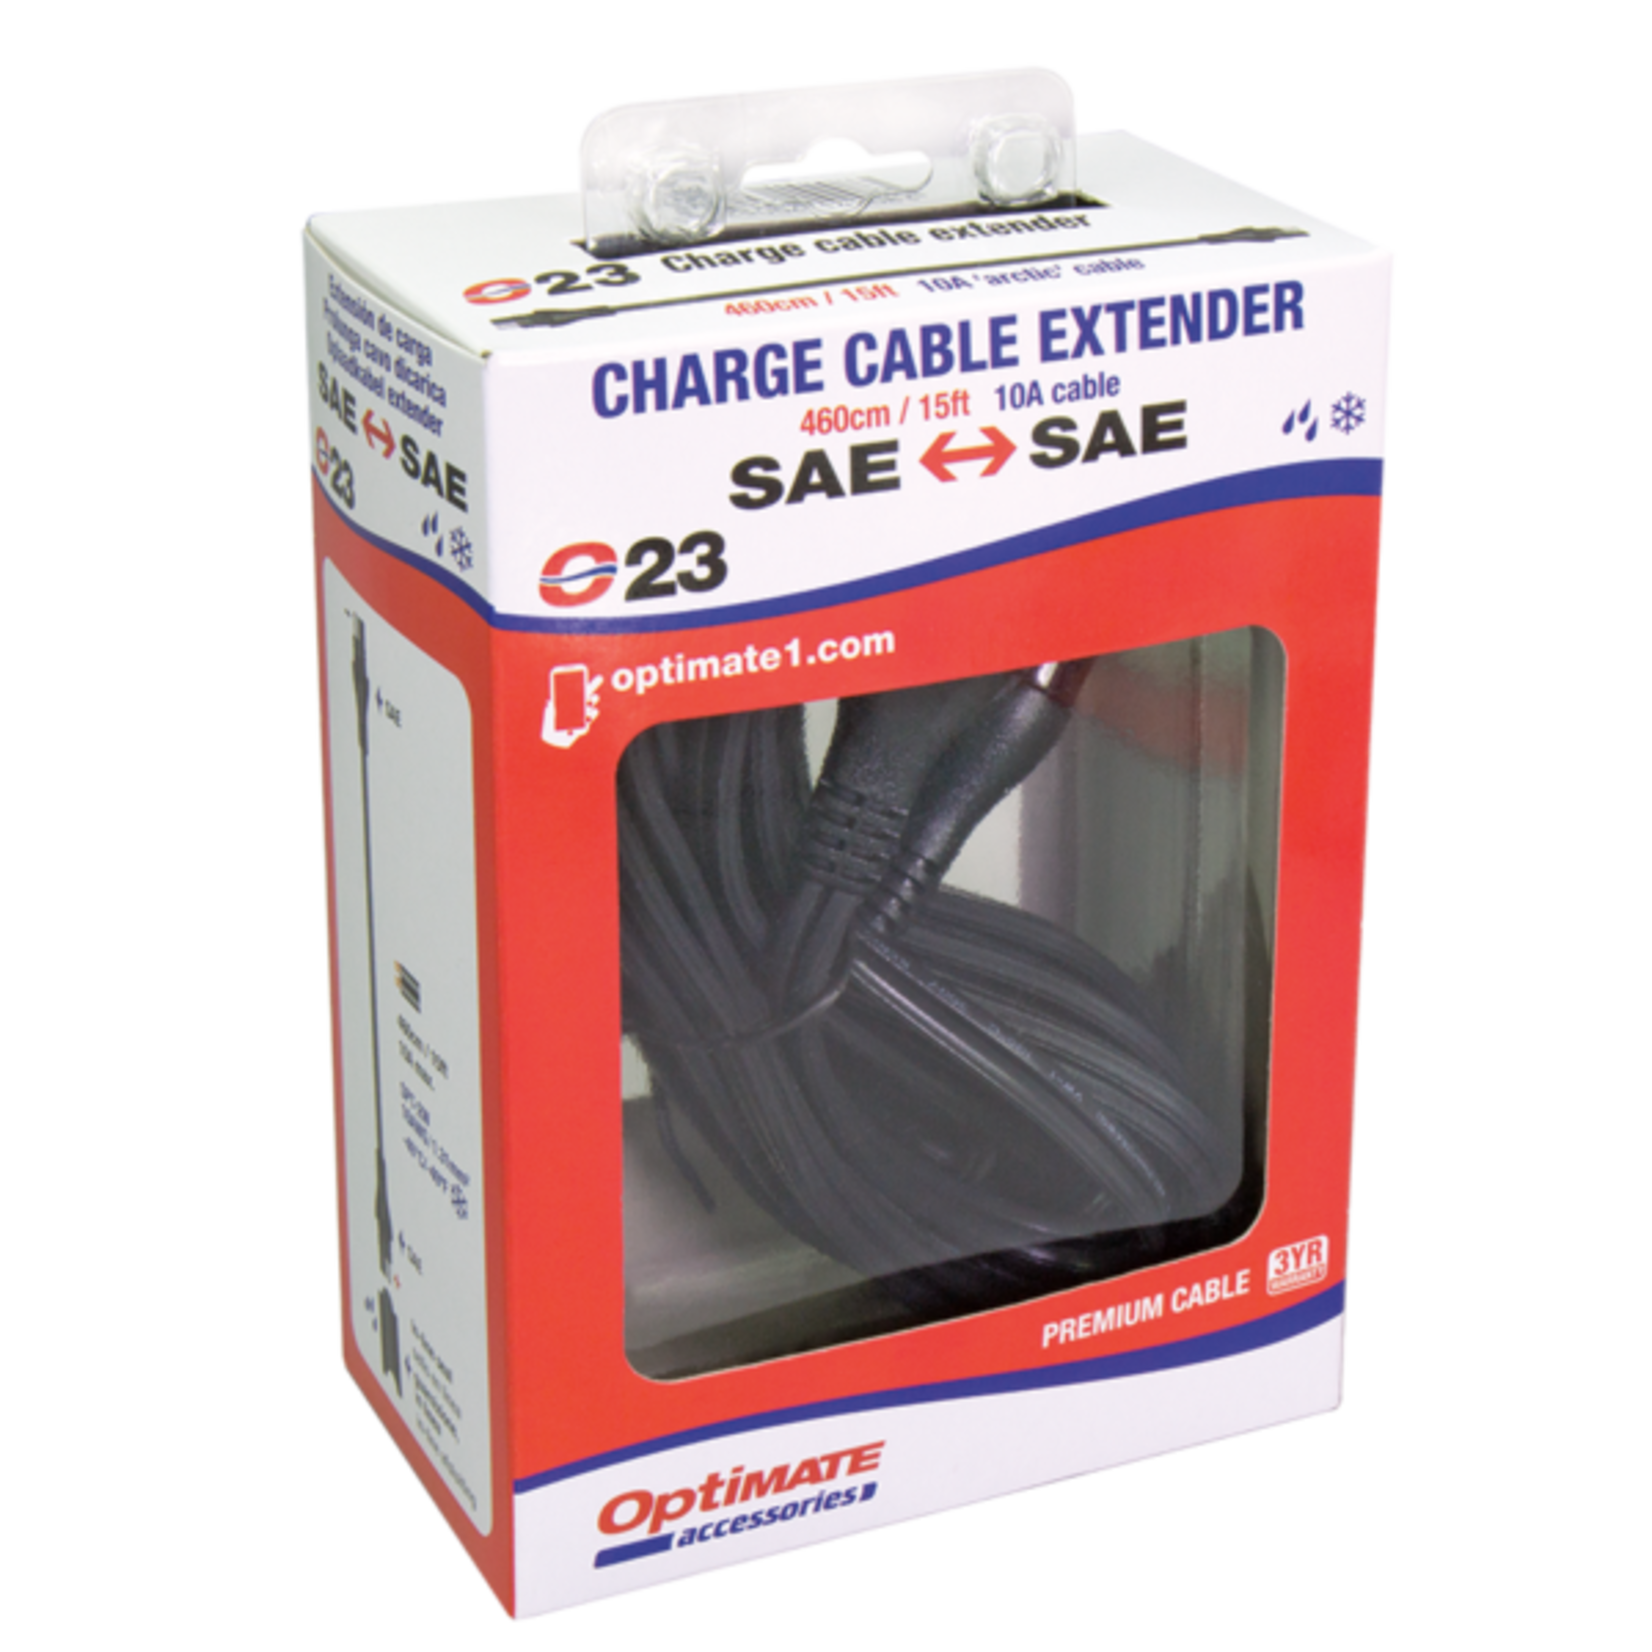 OptiMate OptiMate O-23 Cable extender 10 Amp